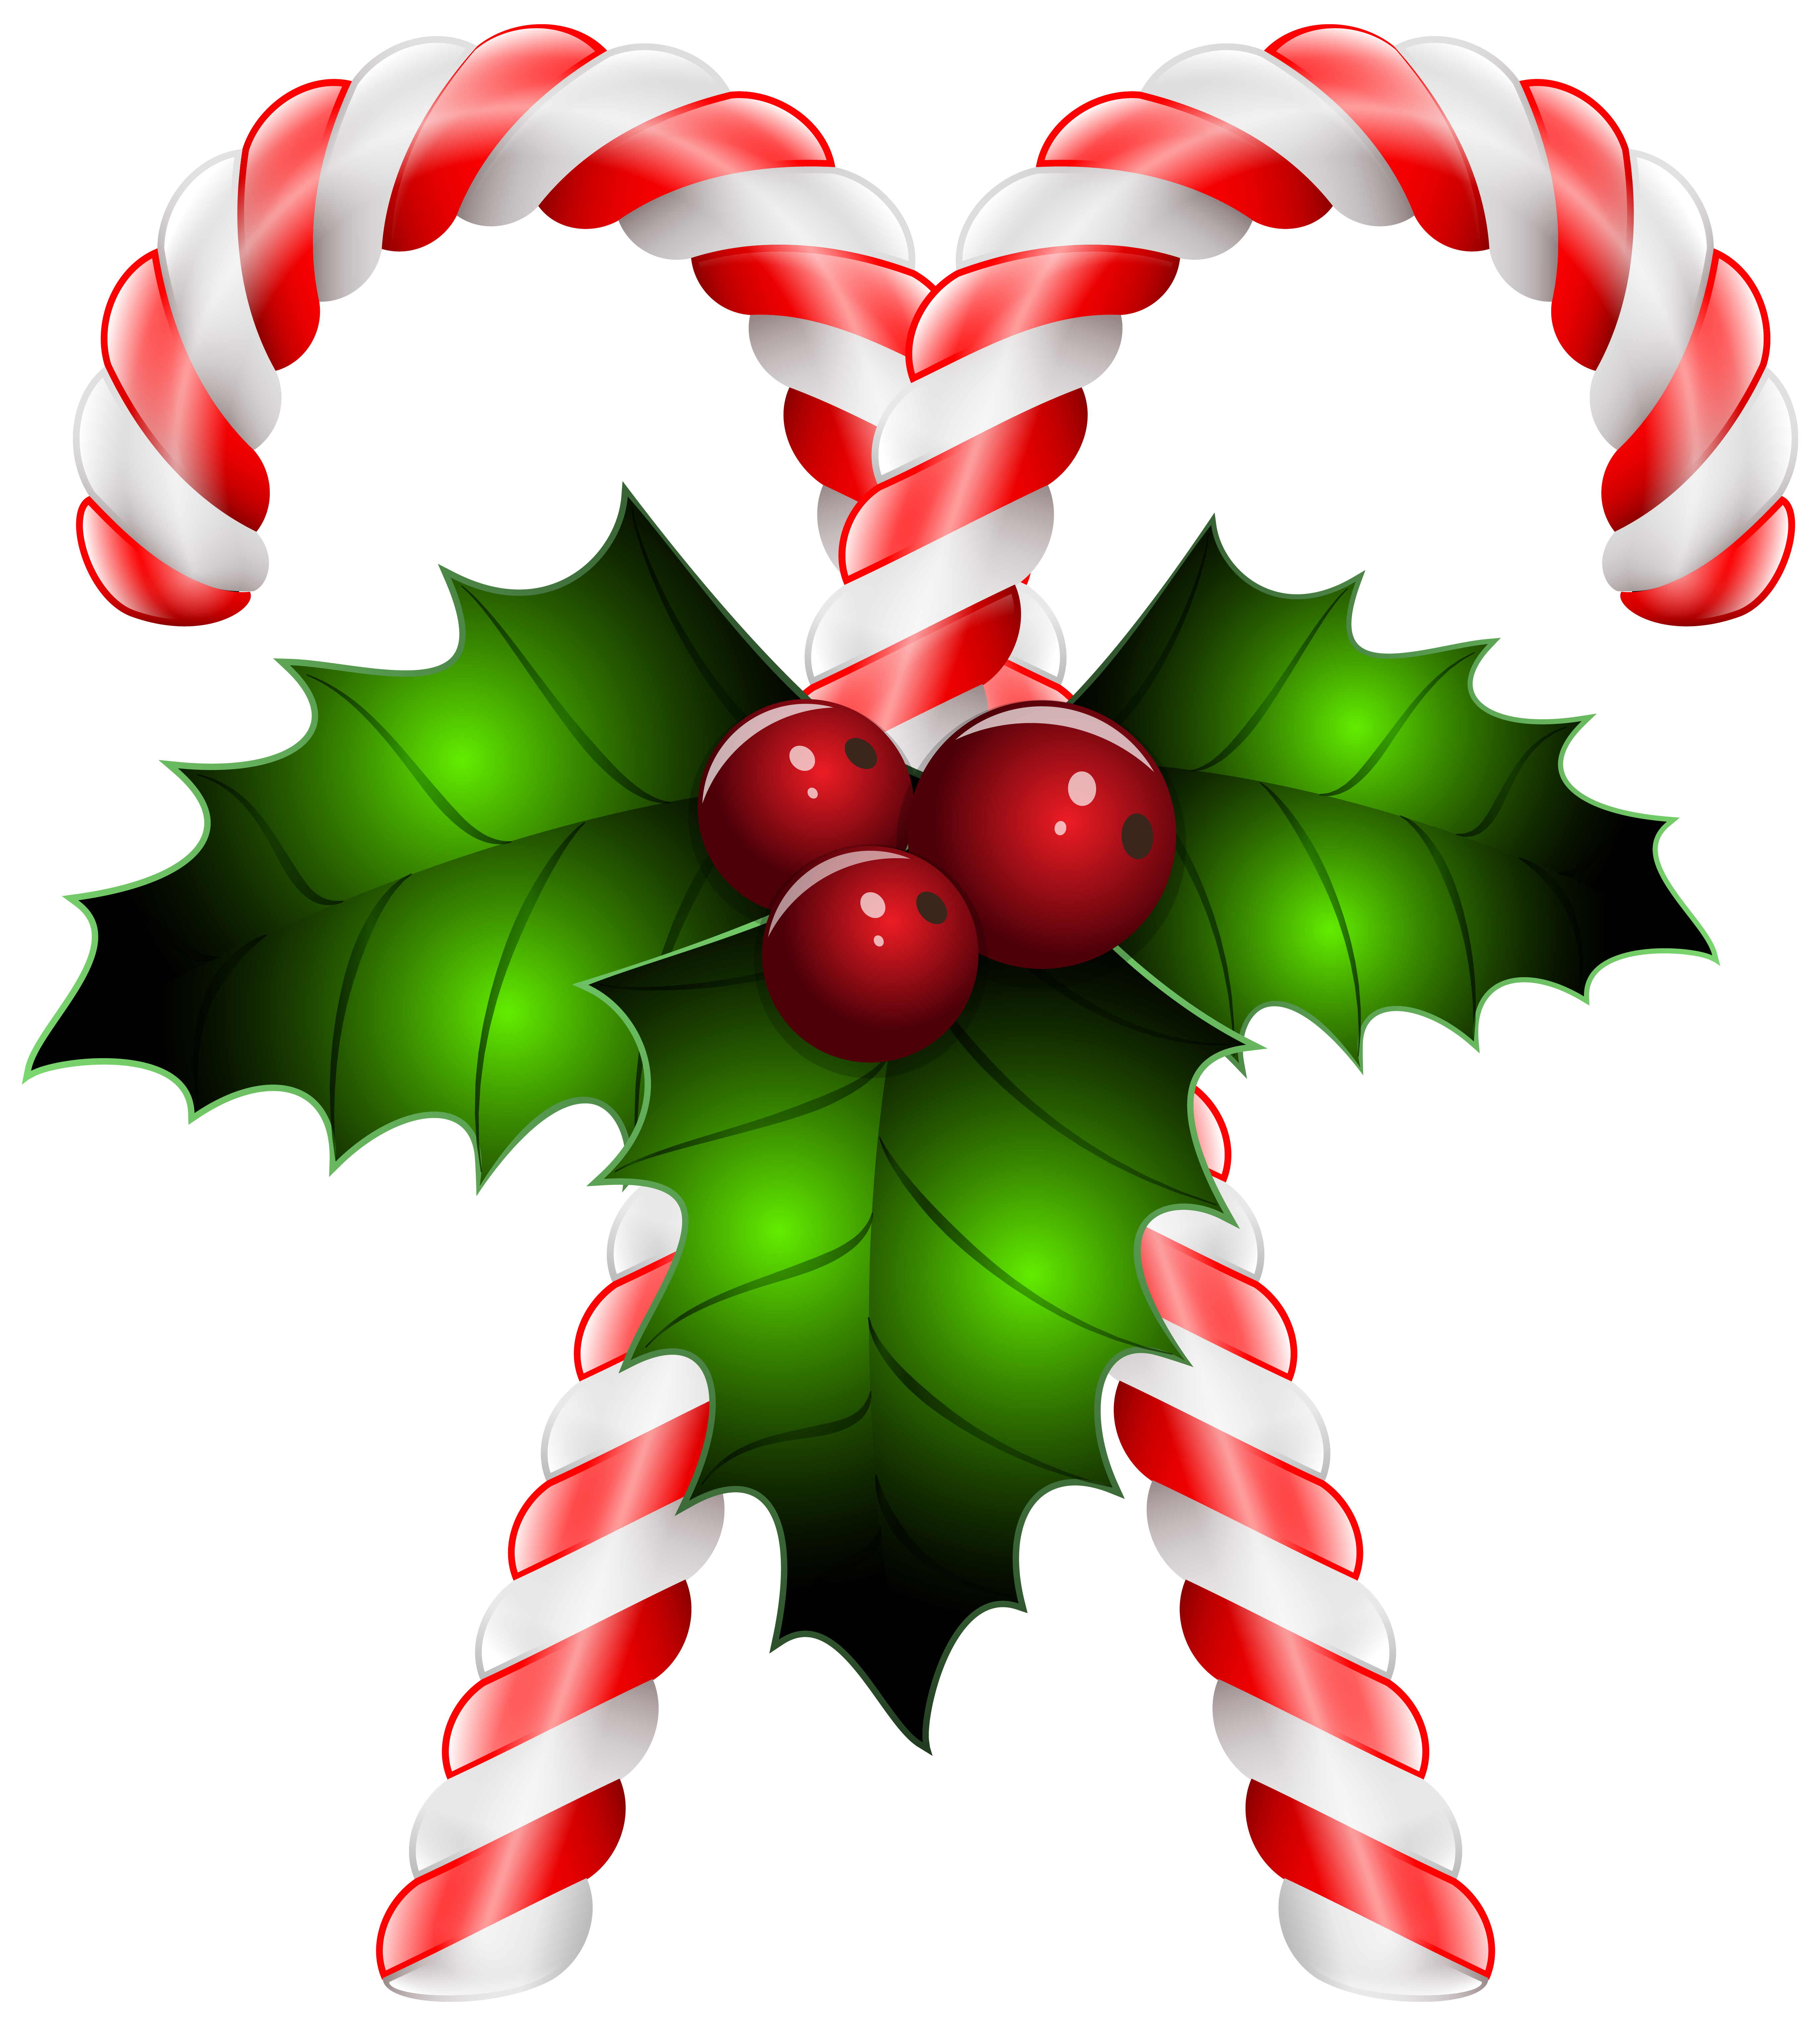 png black and white download Marvellous design candy cane. Holly transparent